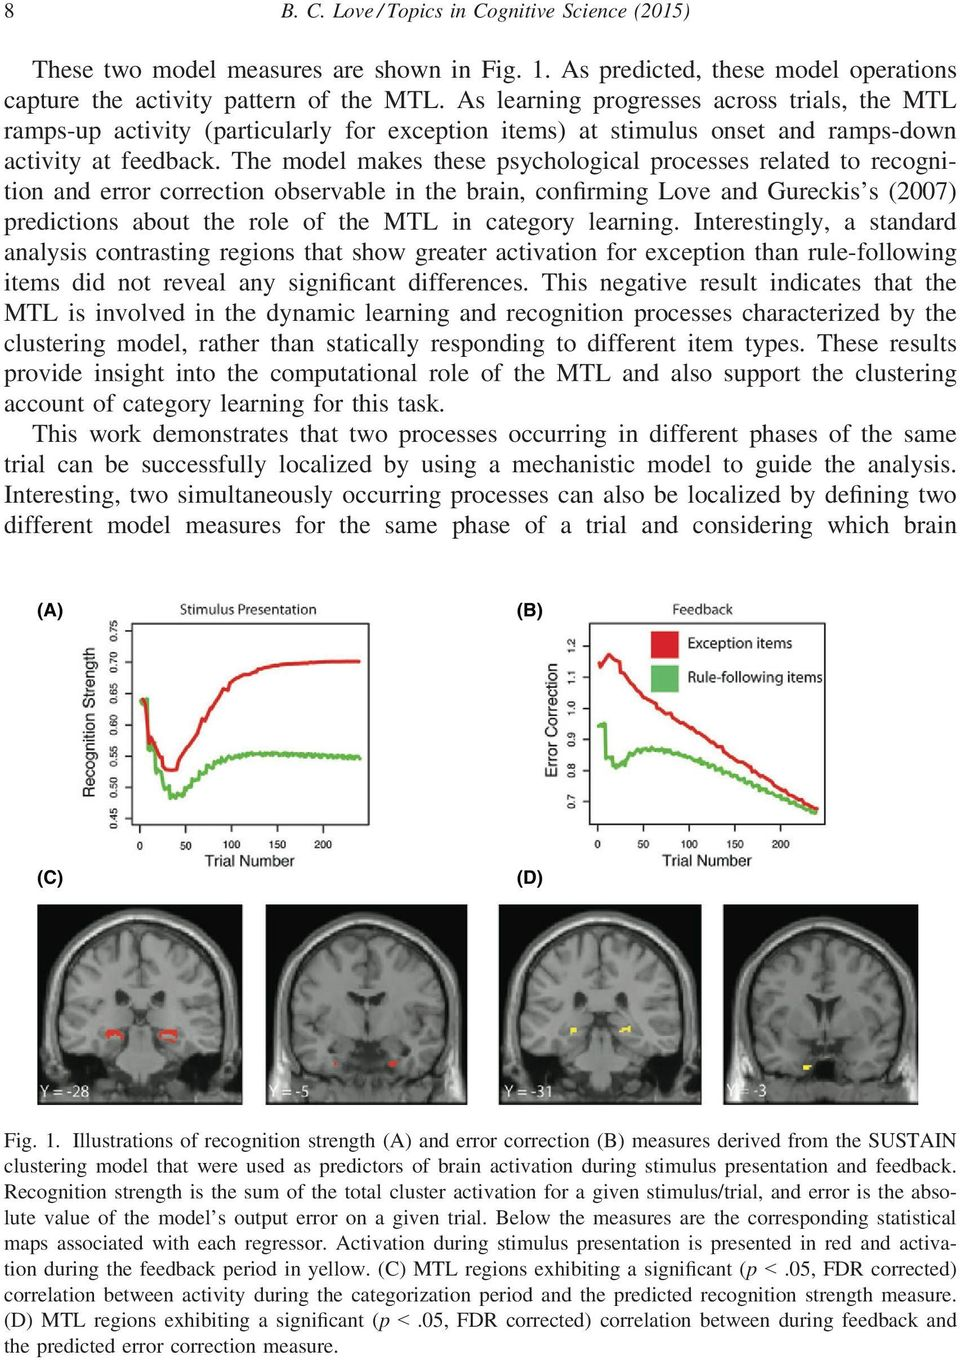 The model makes these psychological processes related to recognition and error correction observable in the brain, confirming Love and Gureckis s (2007) predictions about the role of the MTL in